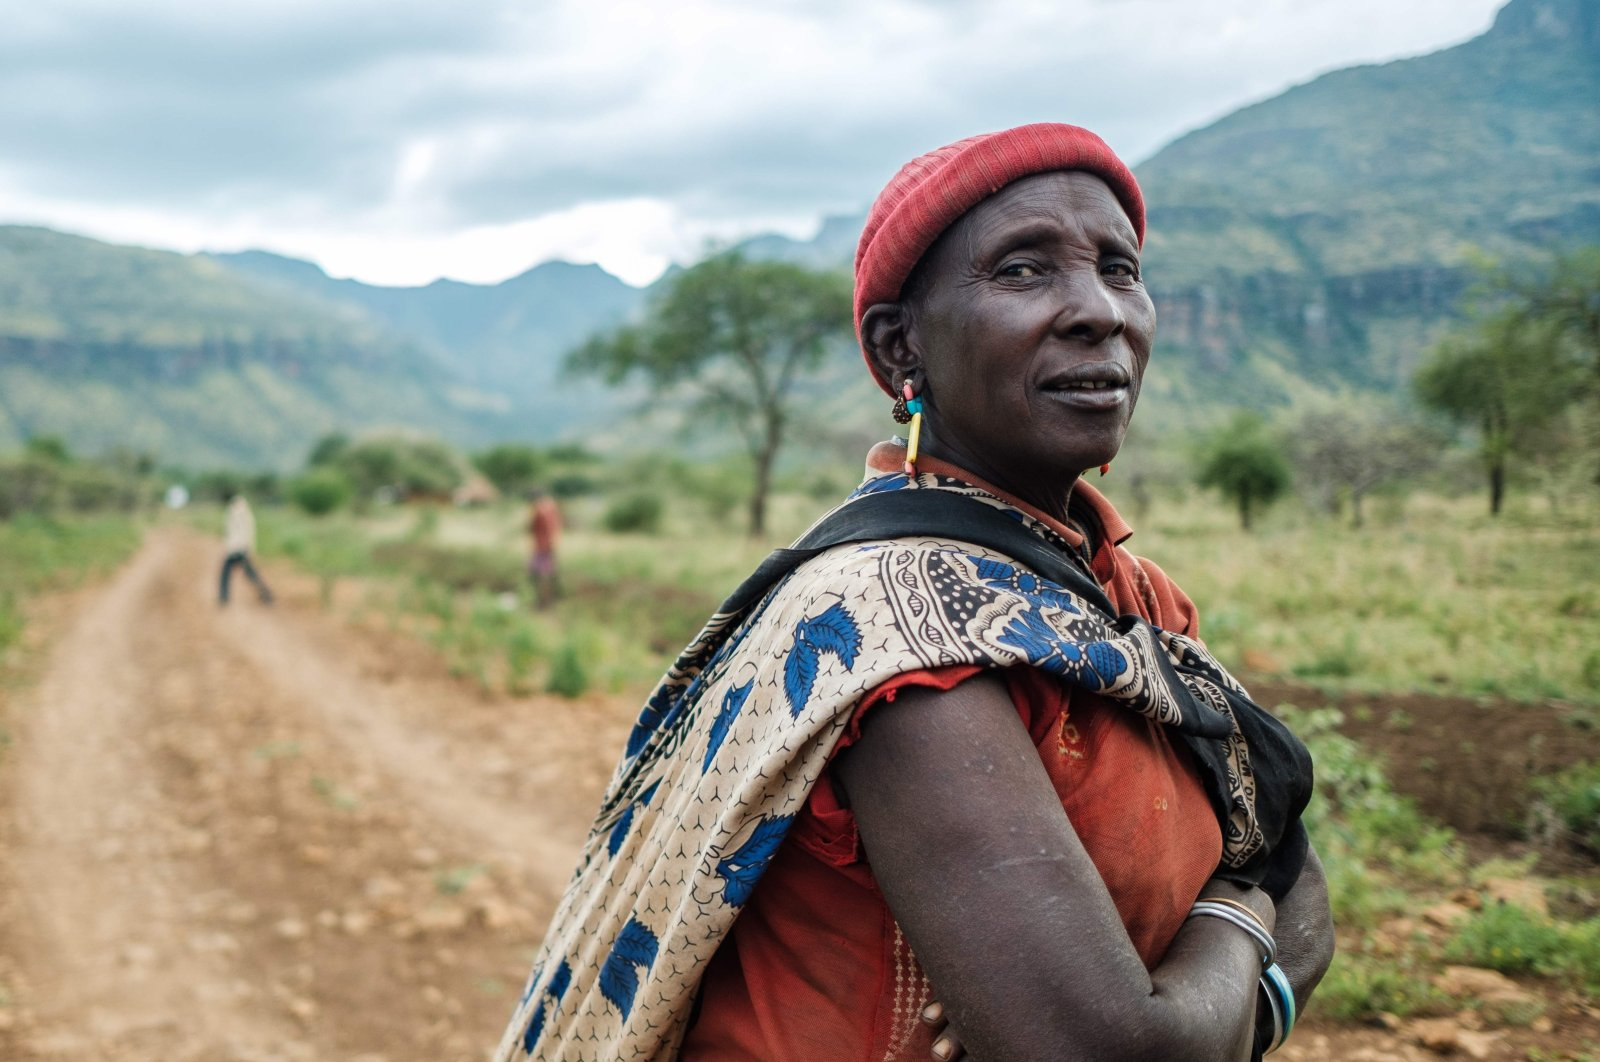 Mary Cheposepoy, a cattle herder, poses for a portrait in Komoret, northern Uganda, Feb. 15, 2020. (AFP Photo)